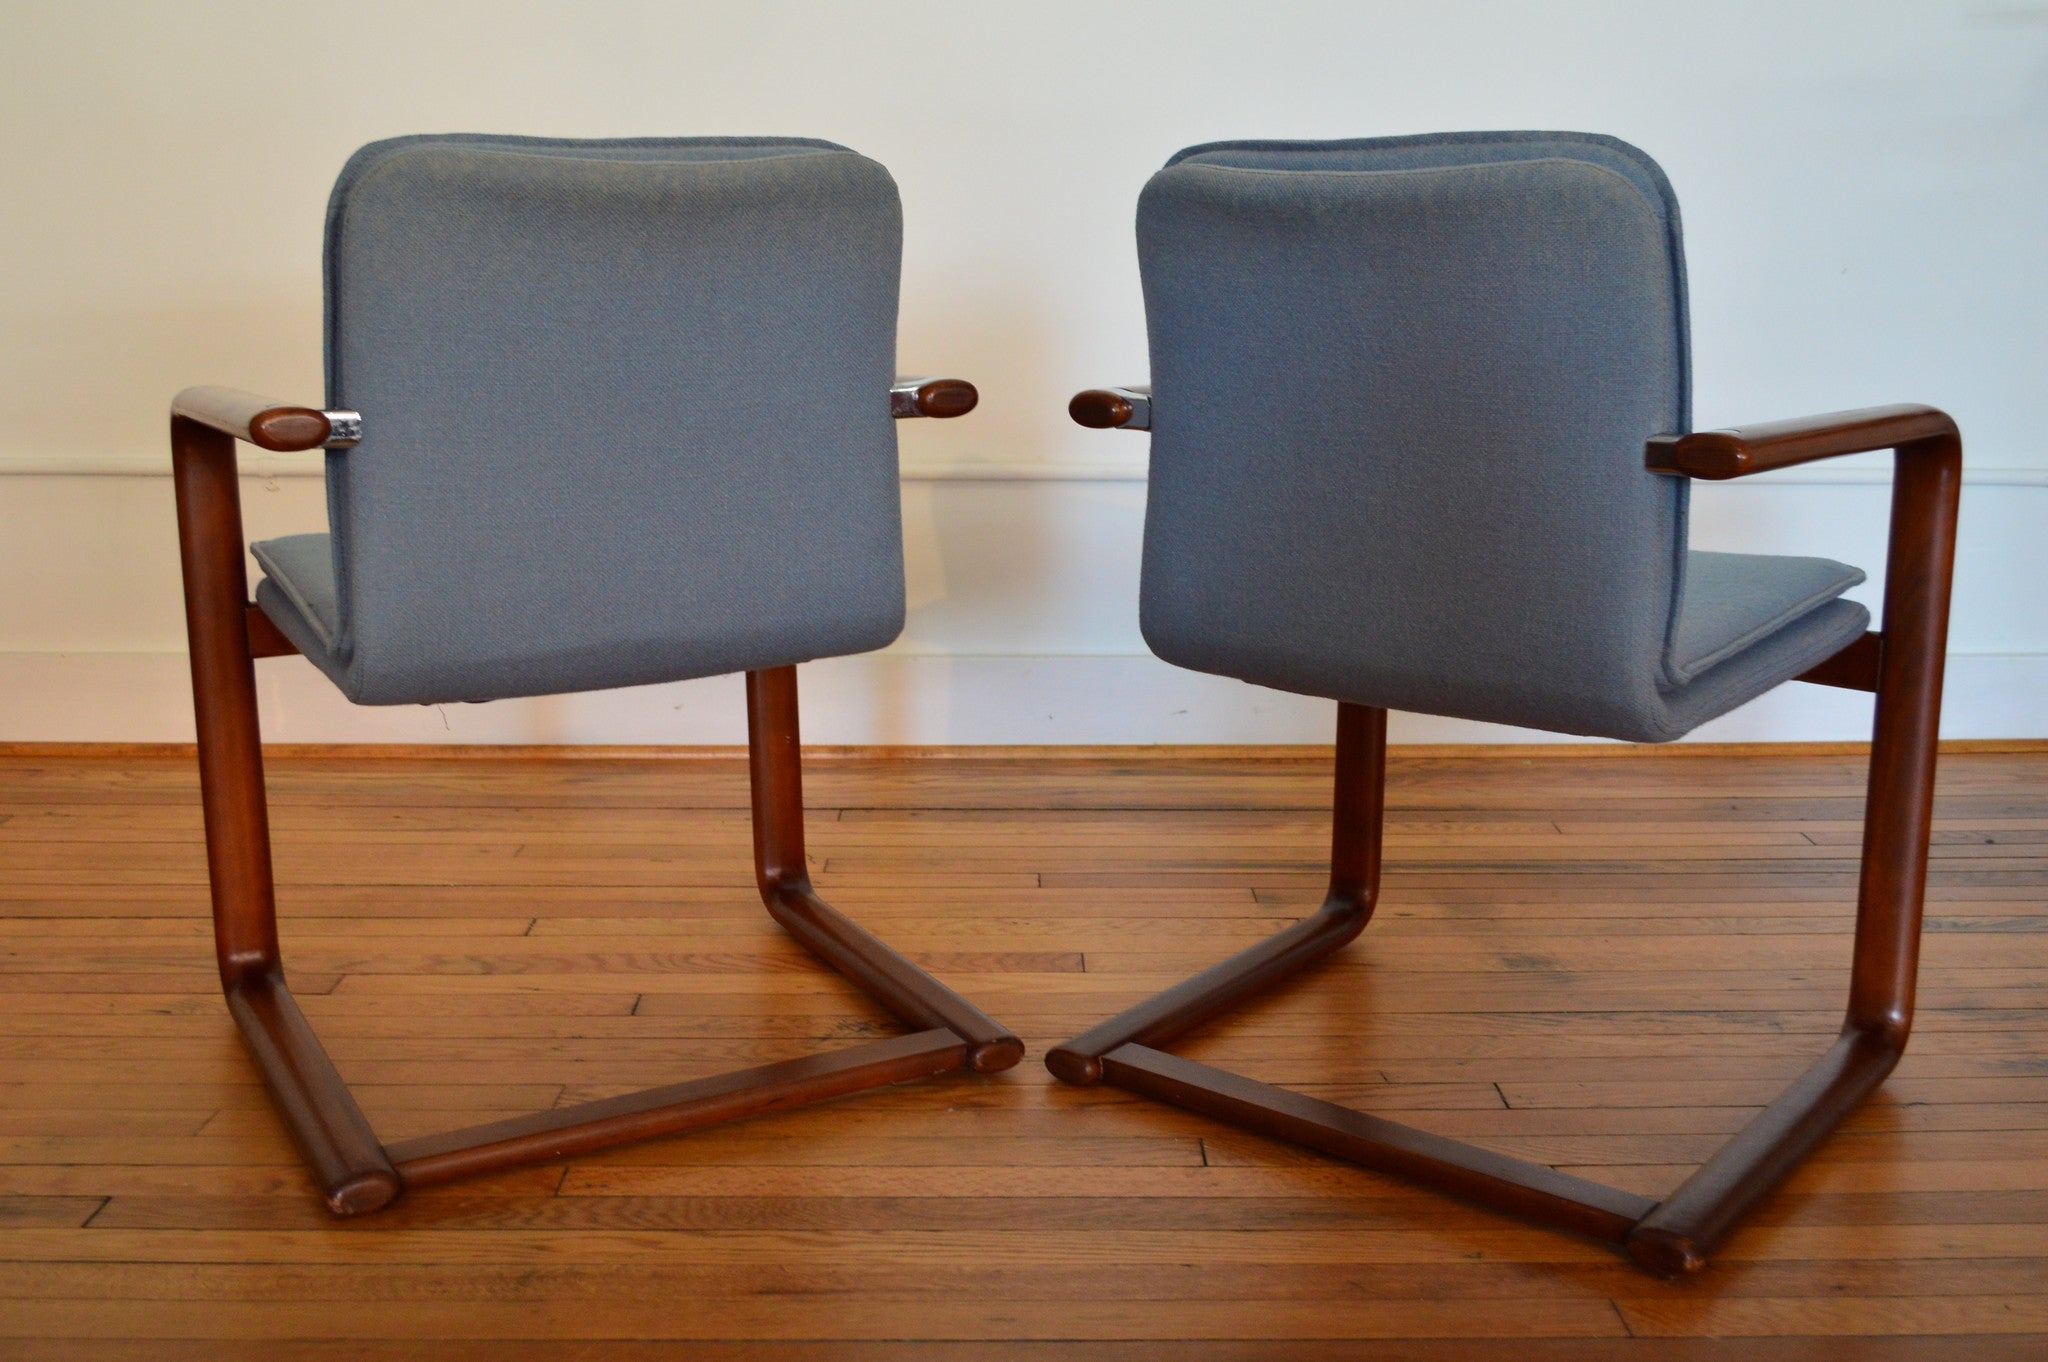 Pair of Mid Century Cantilever Bentwood Chairs in Blue Upholstery